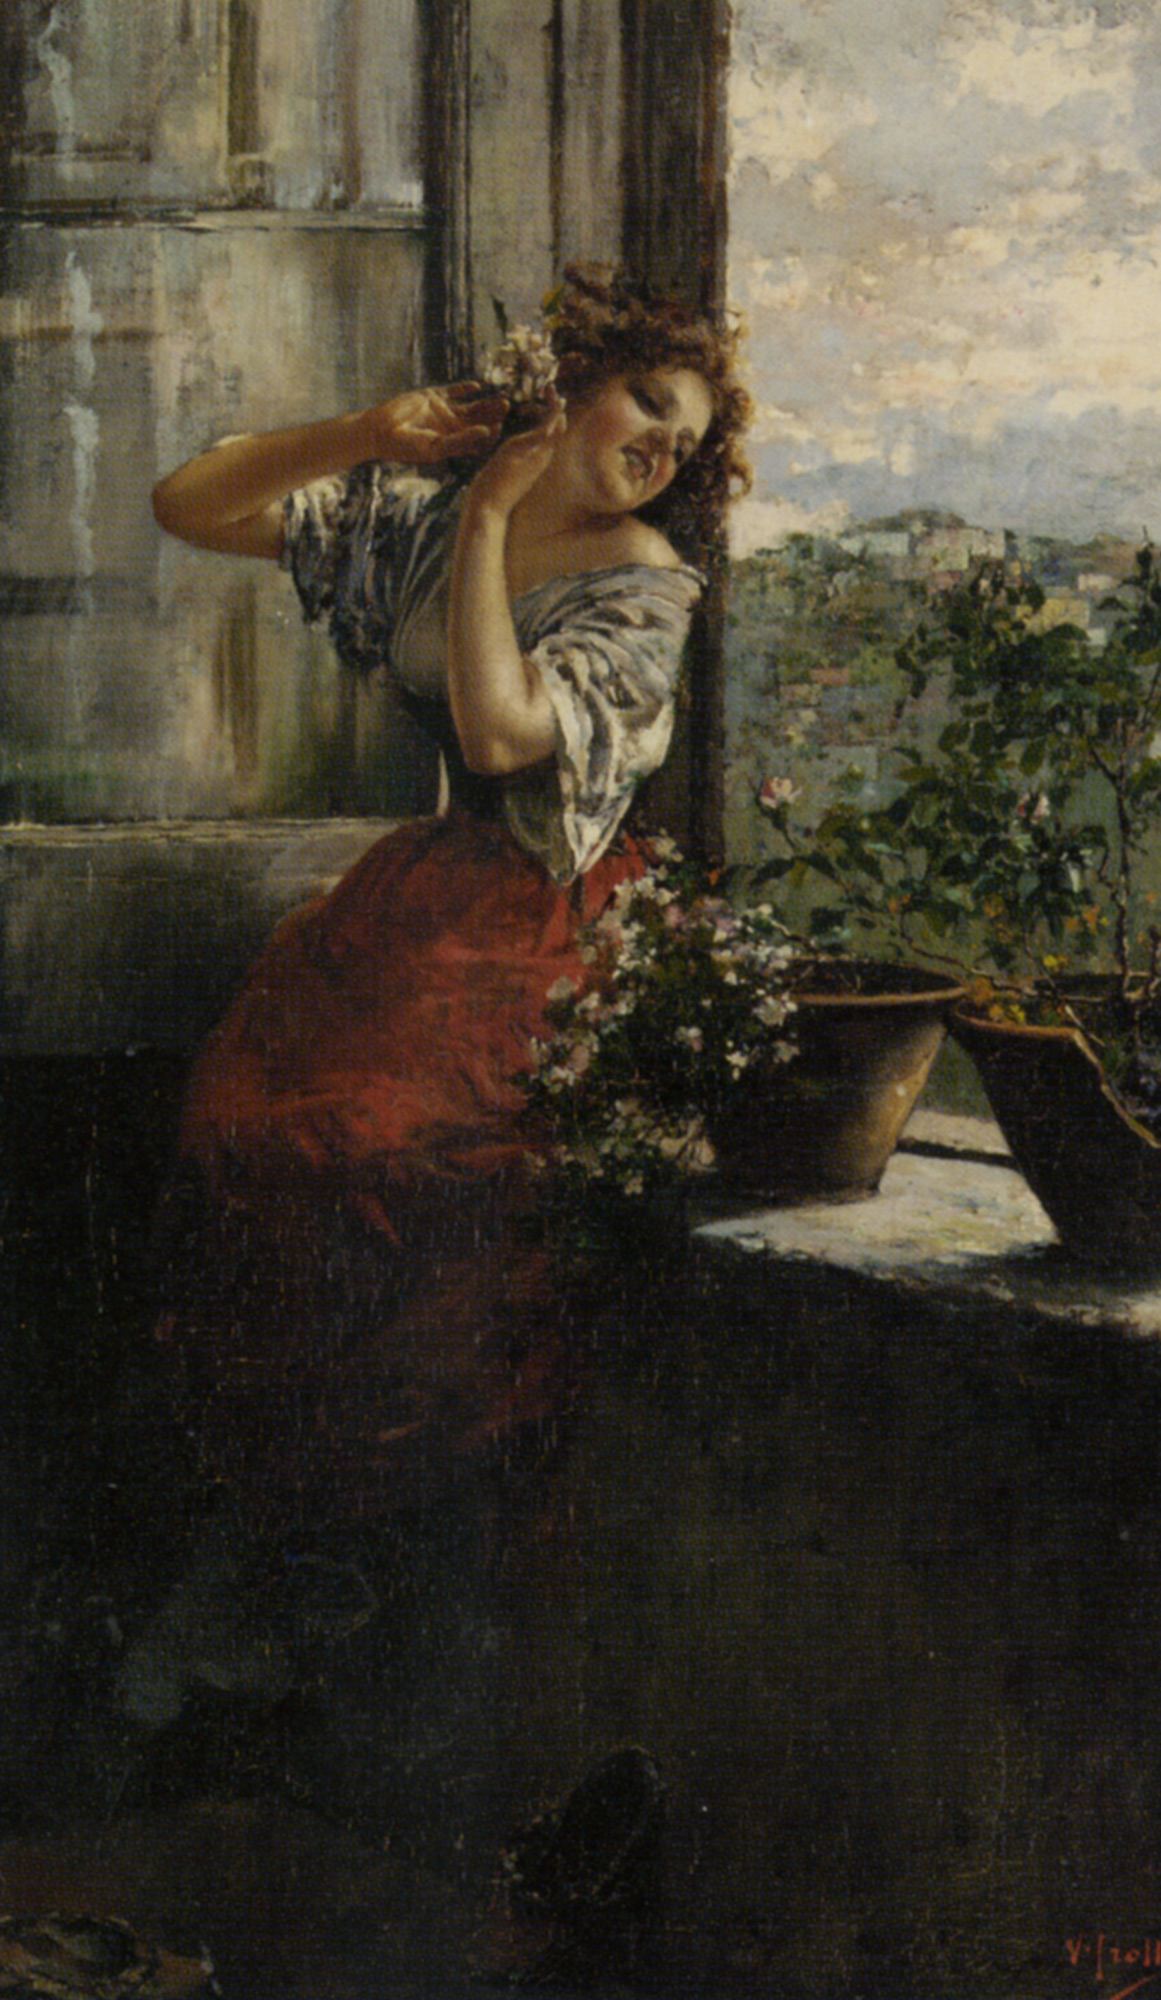 Distant Thoughts :: Vincenzo Irolli - Romantic scenes in art and painting ôîòî